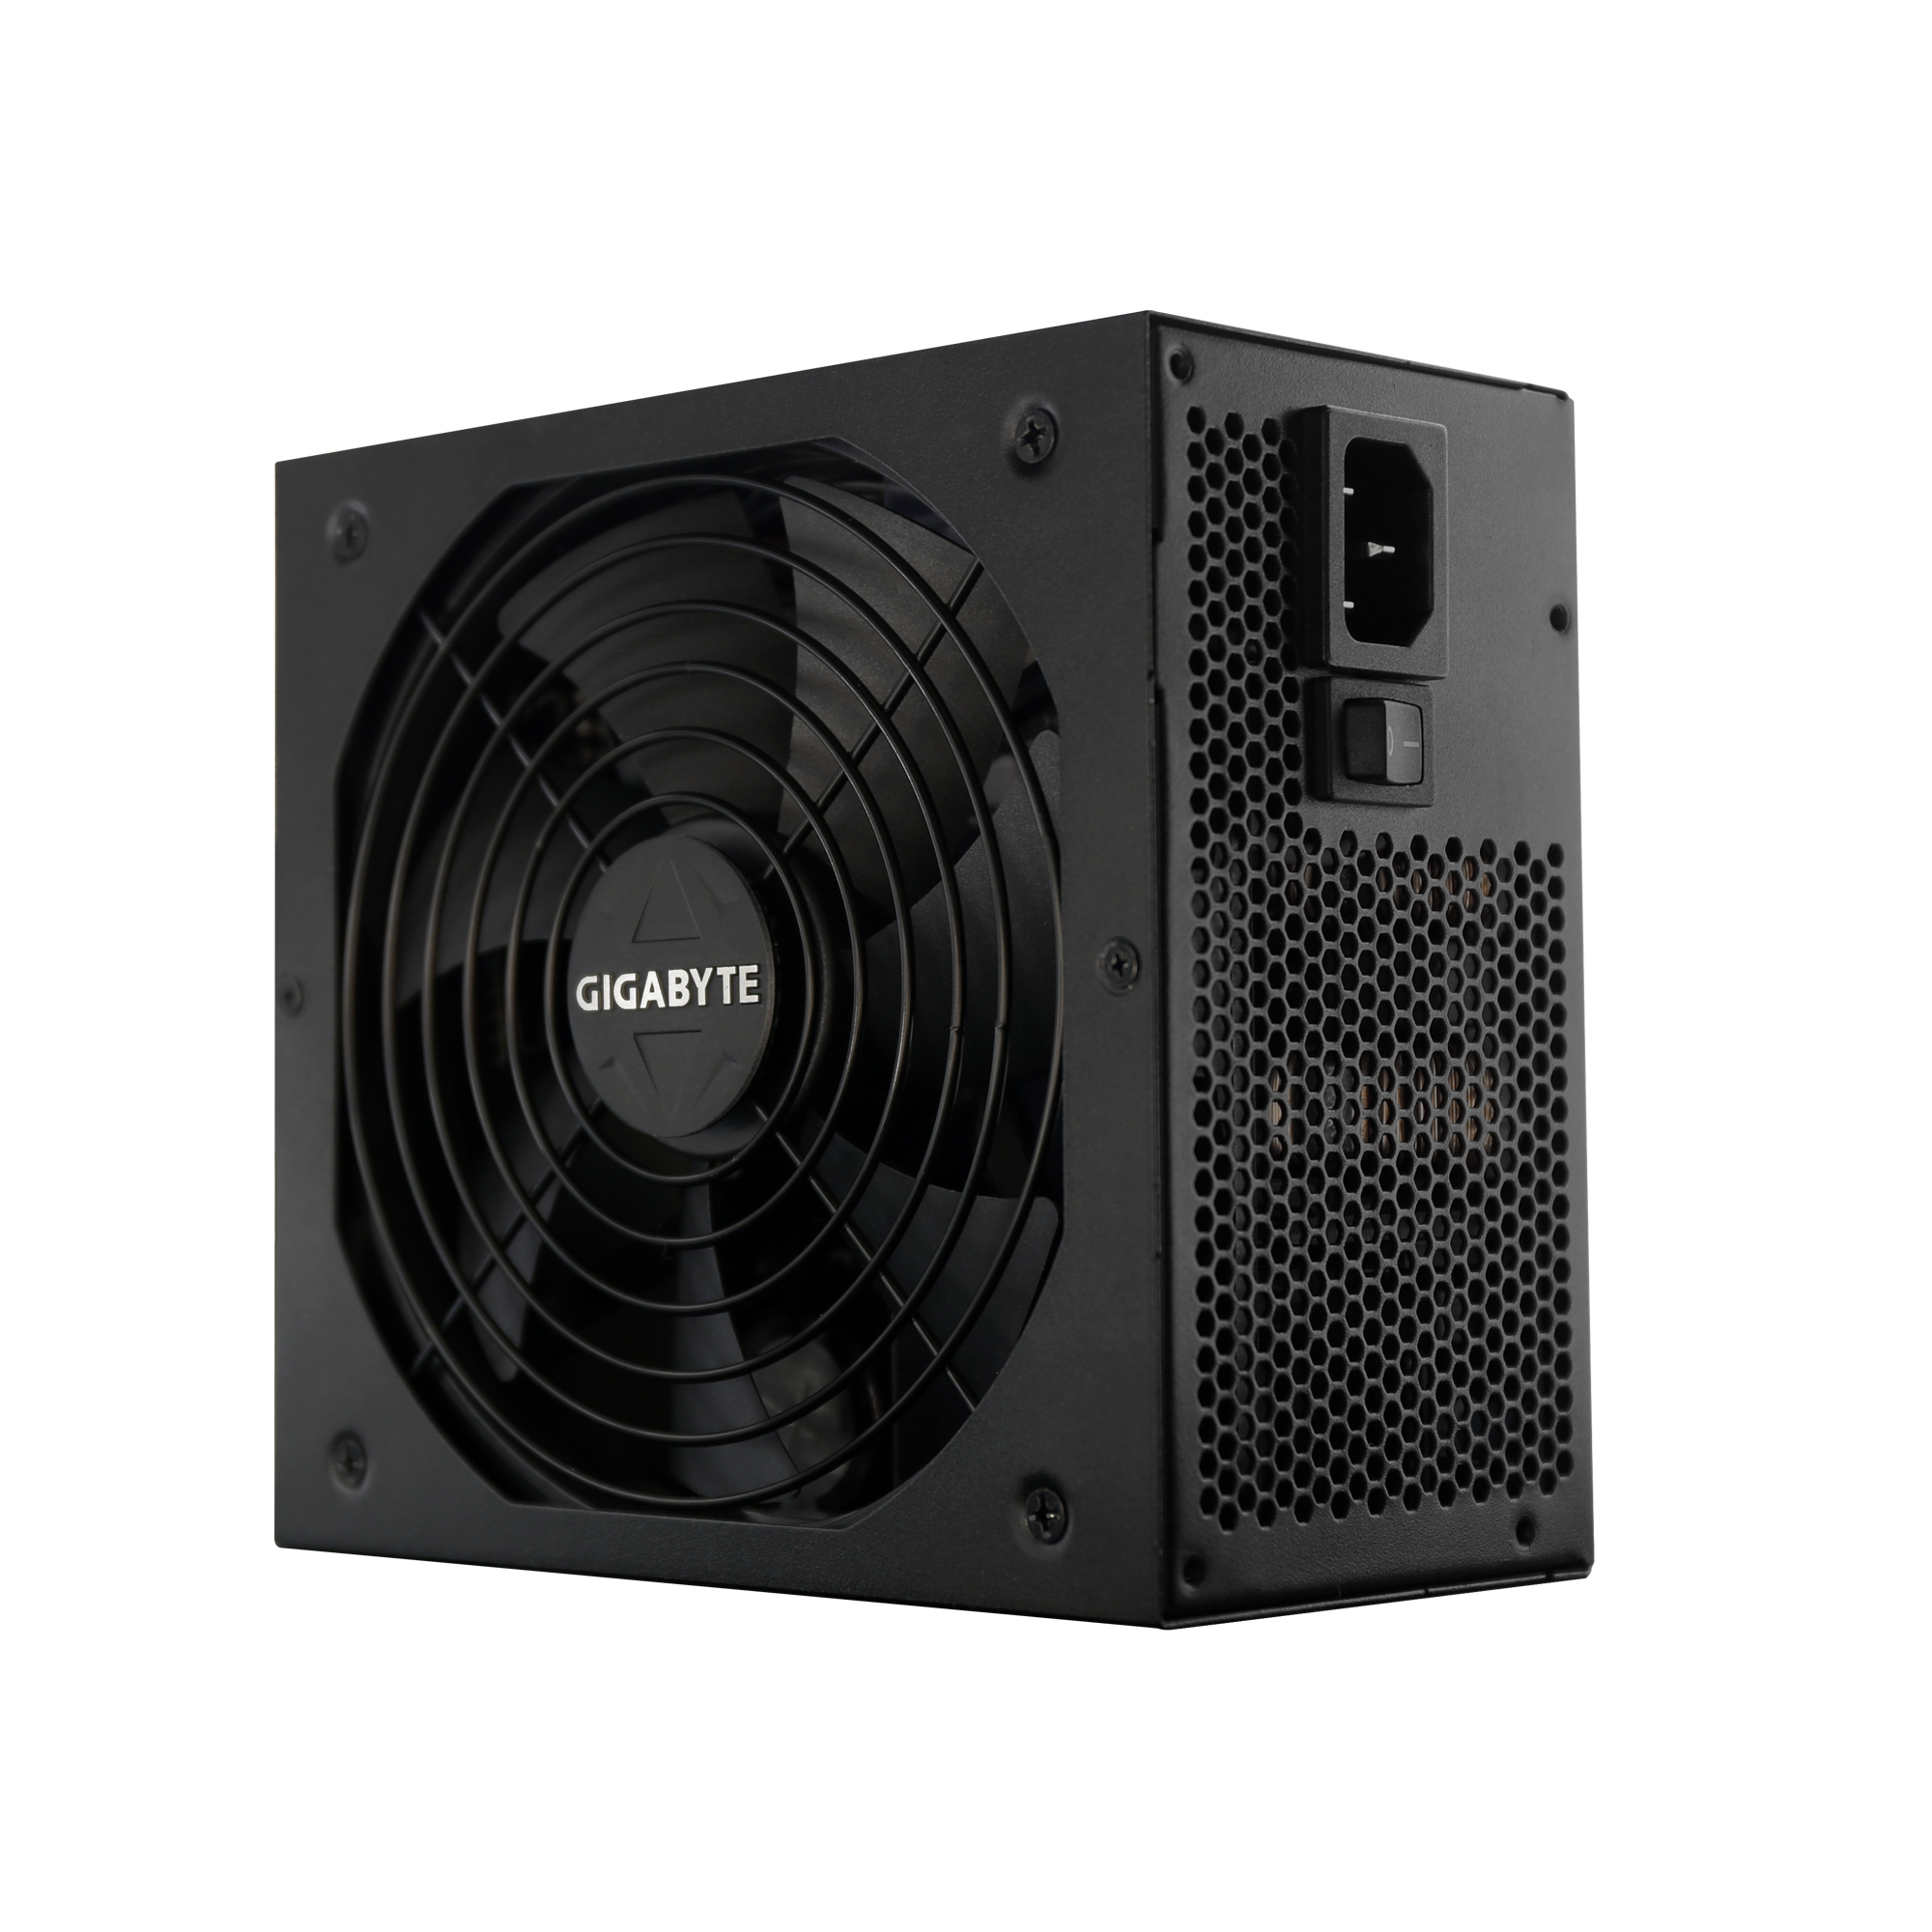 Gigabyte G750H power supply unit 750 W ATX Black